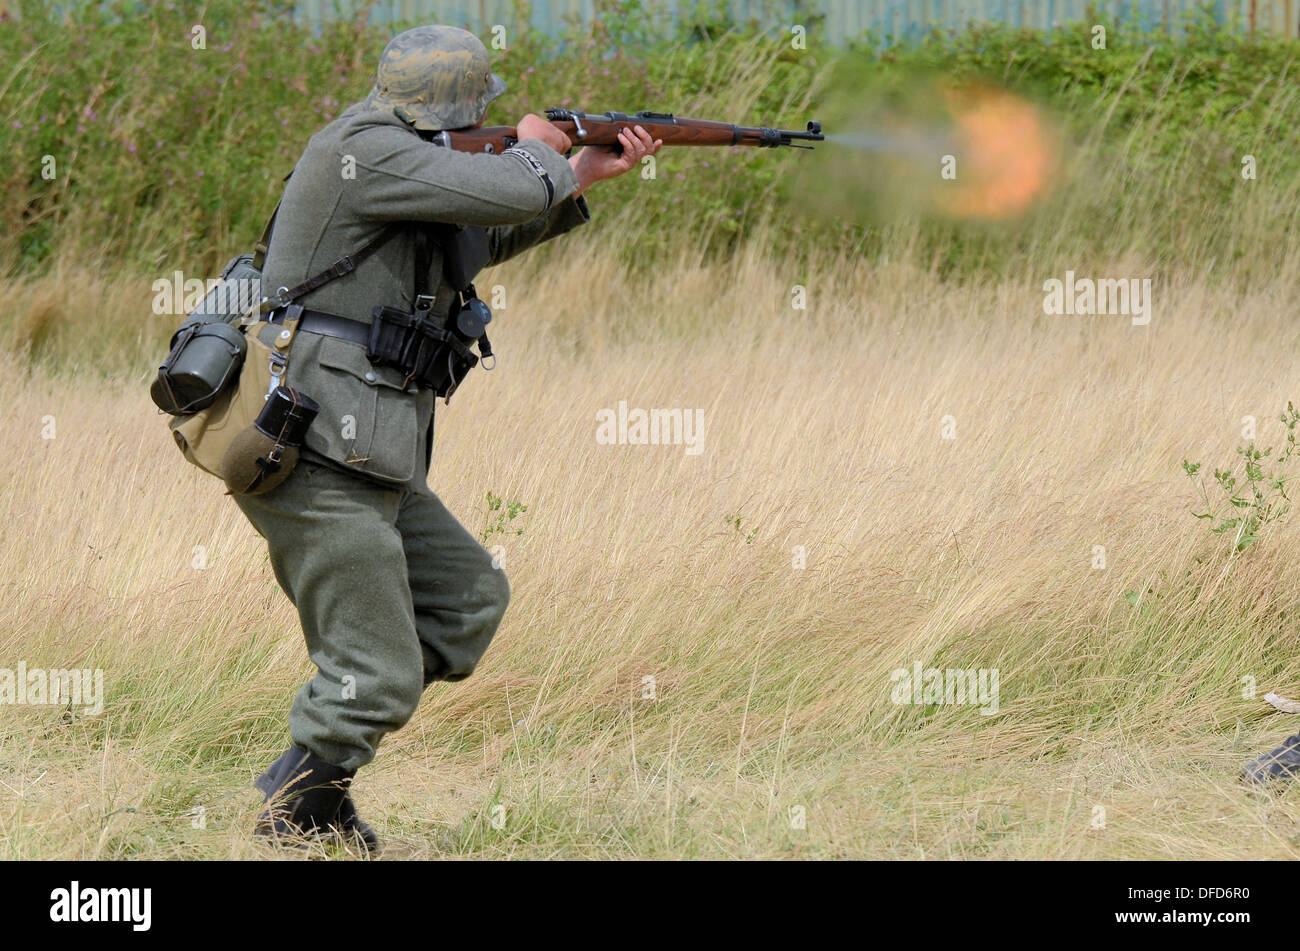 A World War II re-enactor in German army uniform fires his rifle - Stock Image